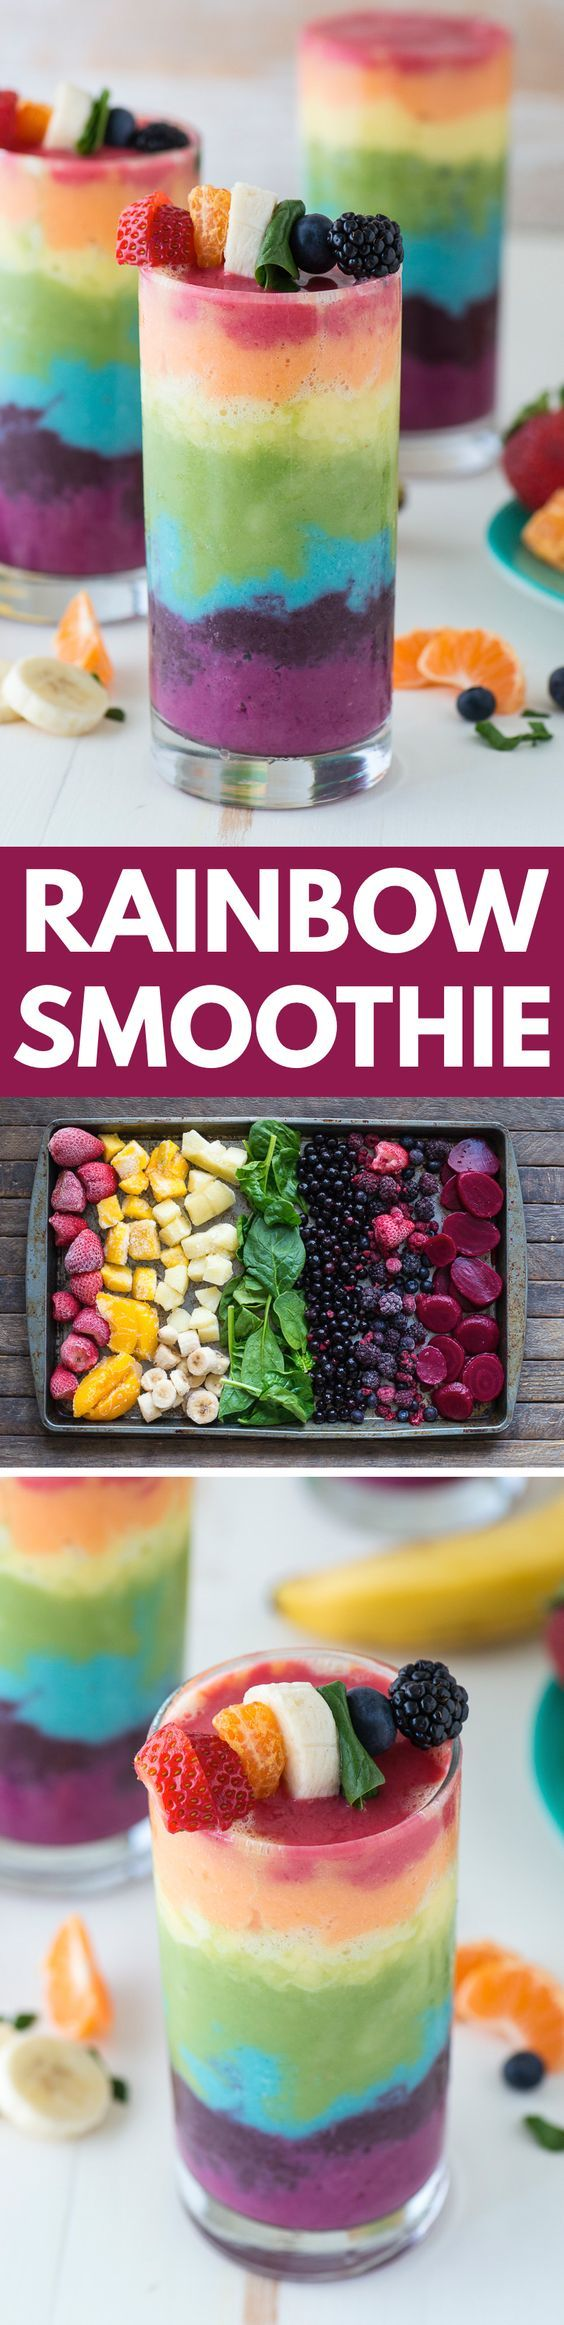 Beautiful 7 layer rainbow smoothie recipe! Full of tons of fruit and topped with a fruit skewer, it's the ultimate rainbow smoothie!